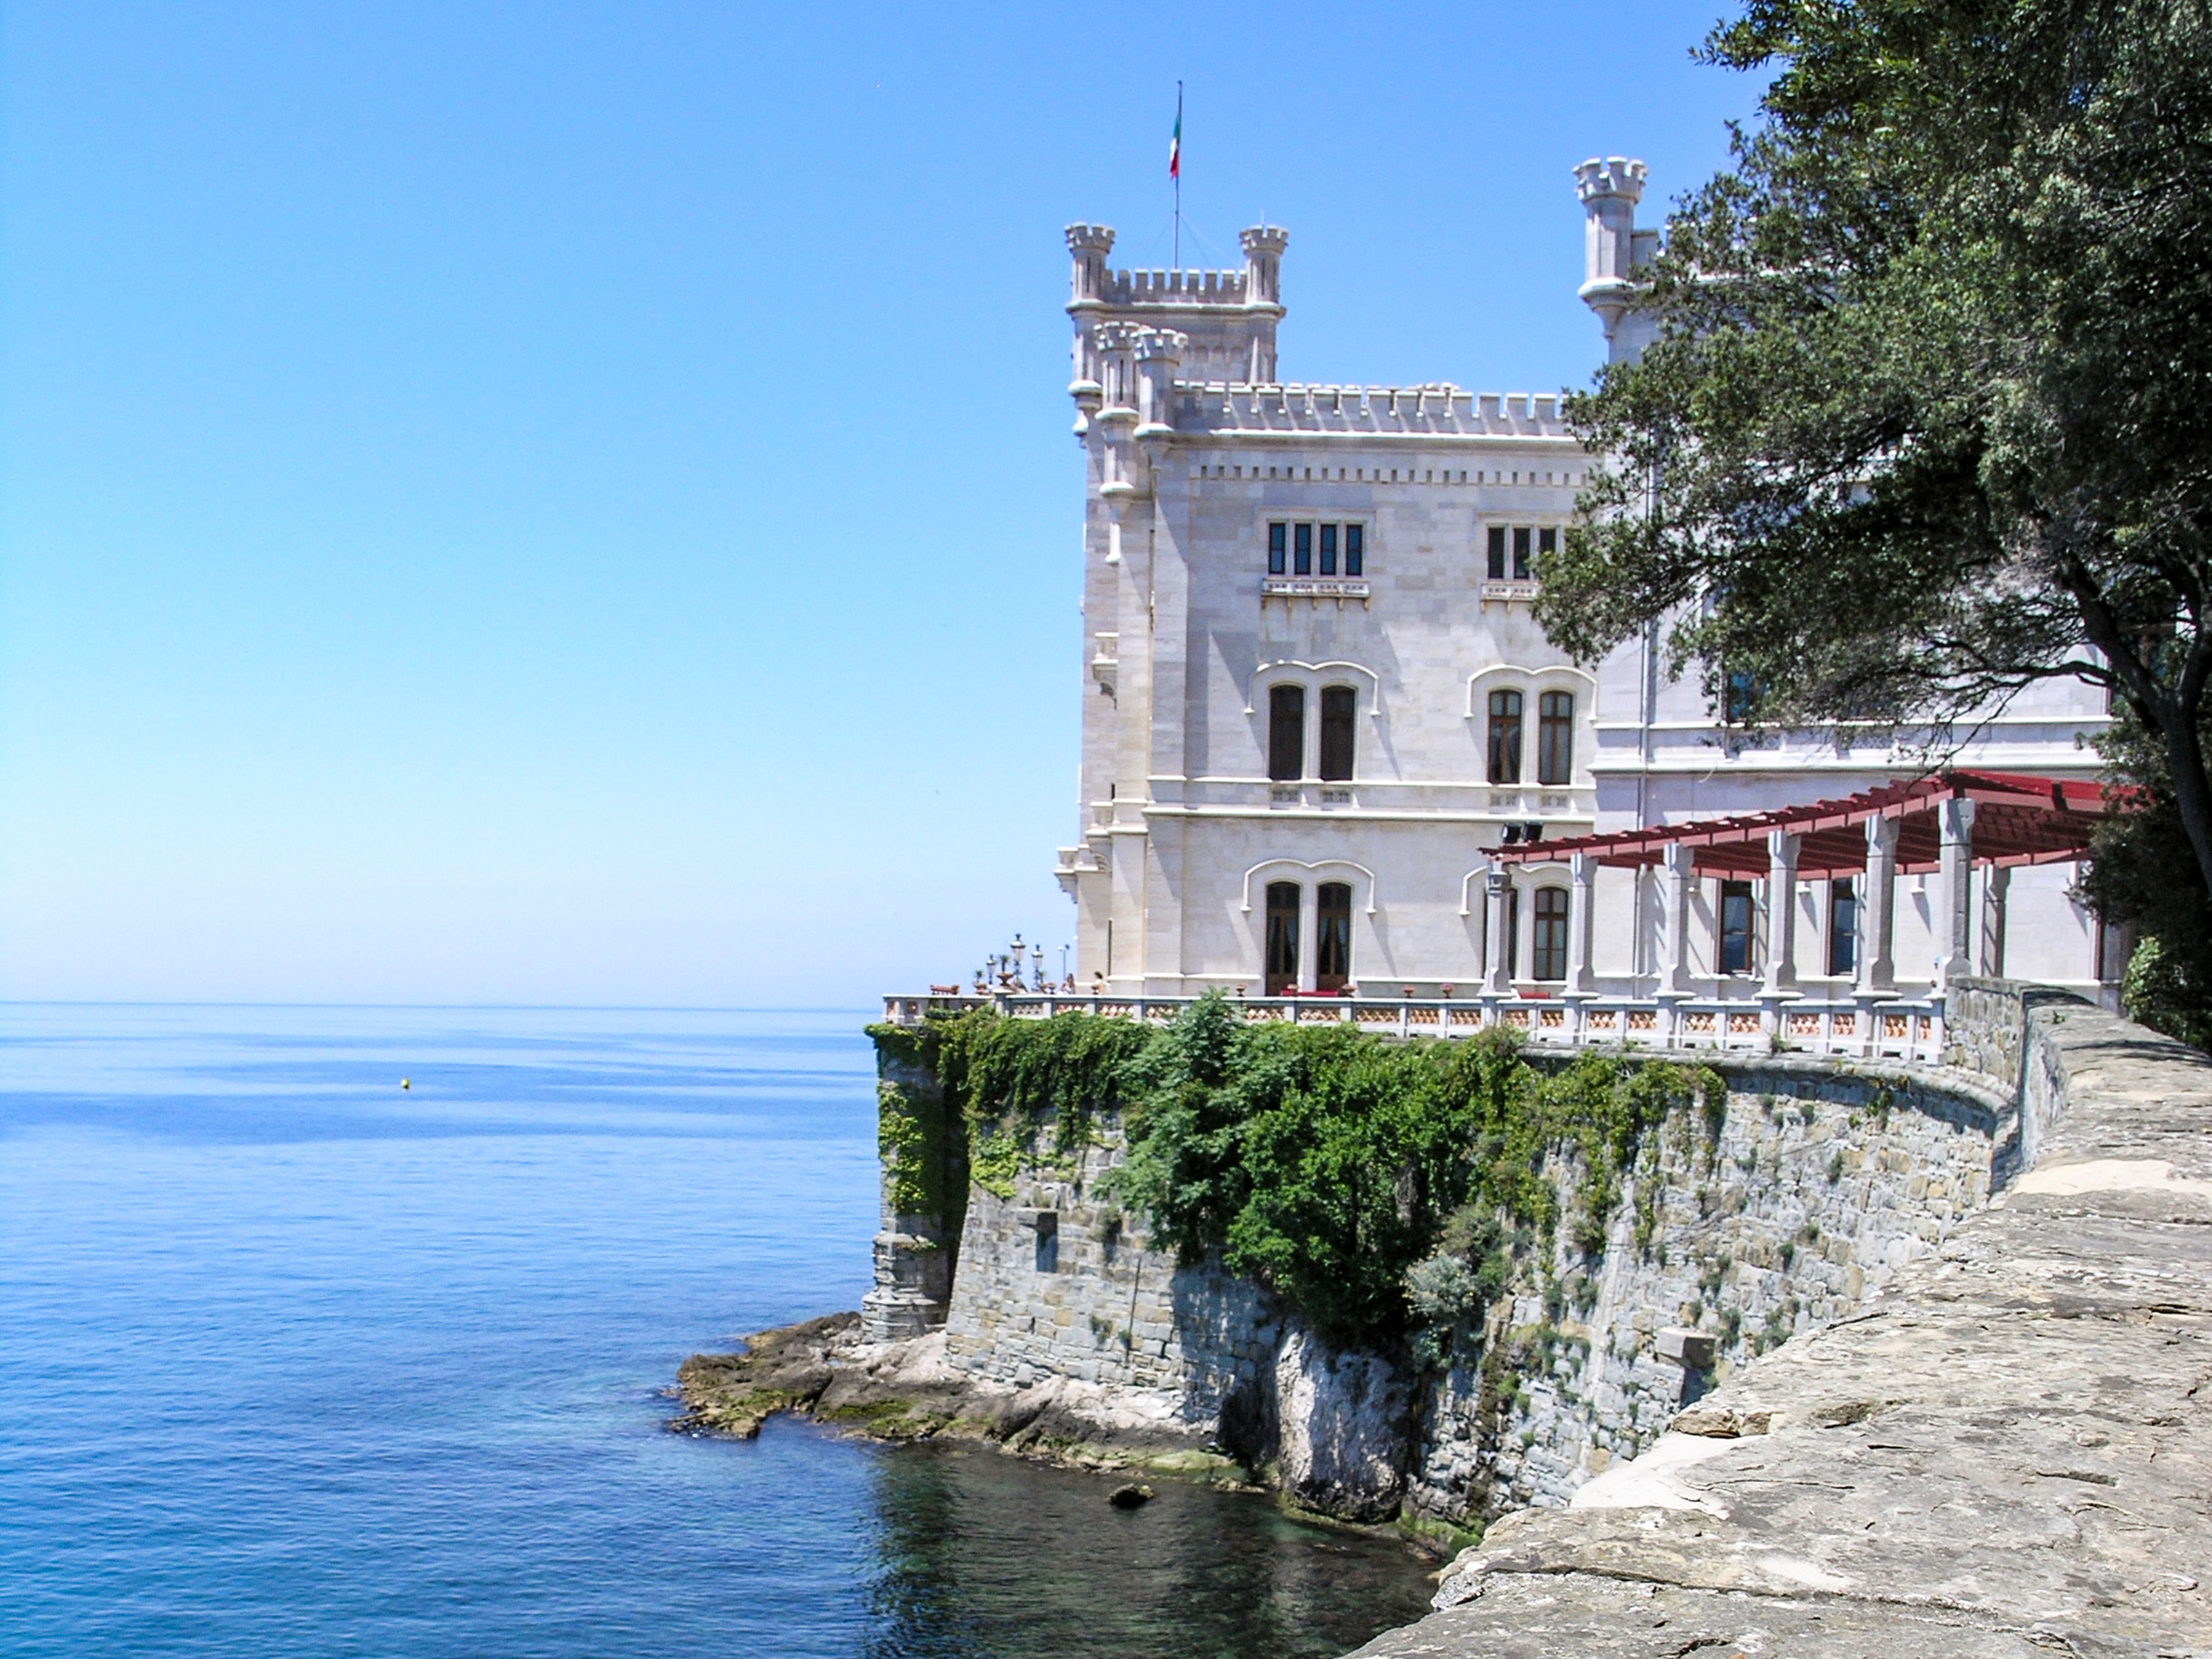 Tower over the sea in Italy